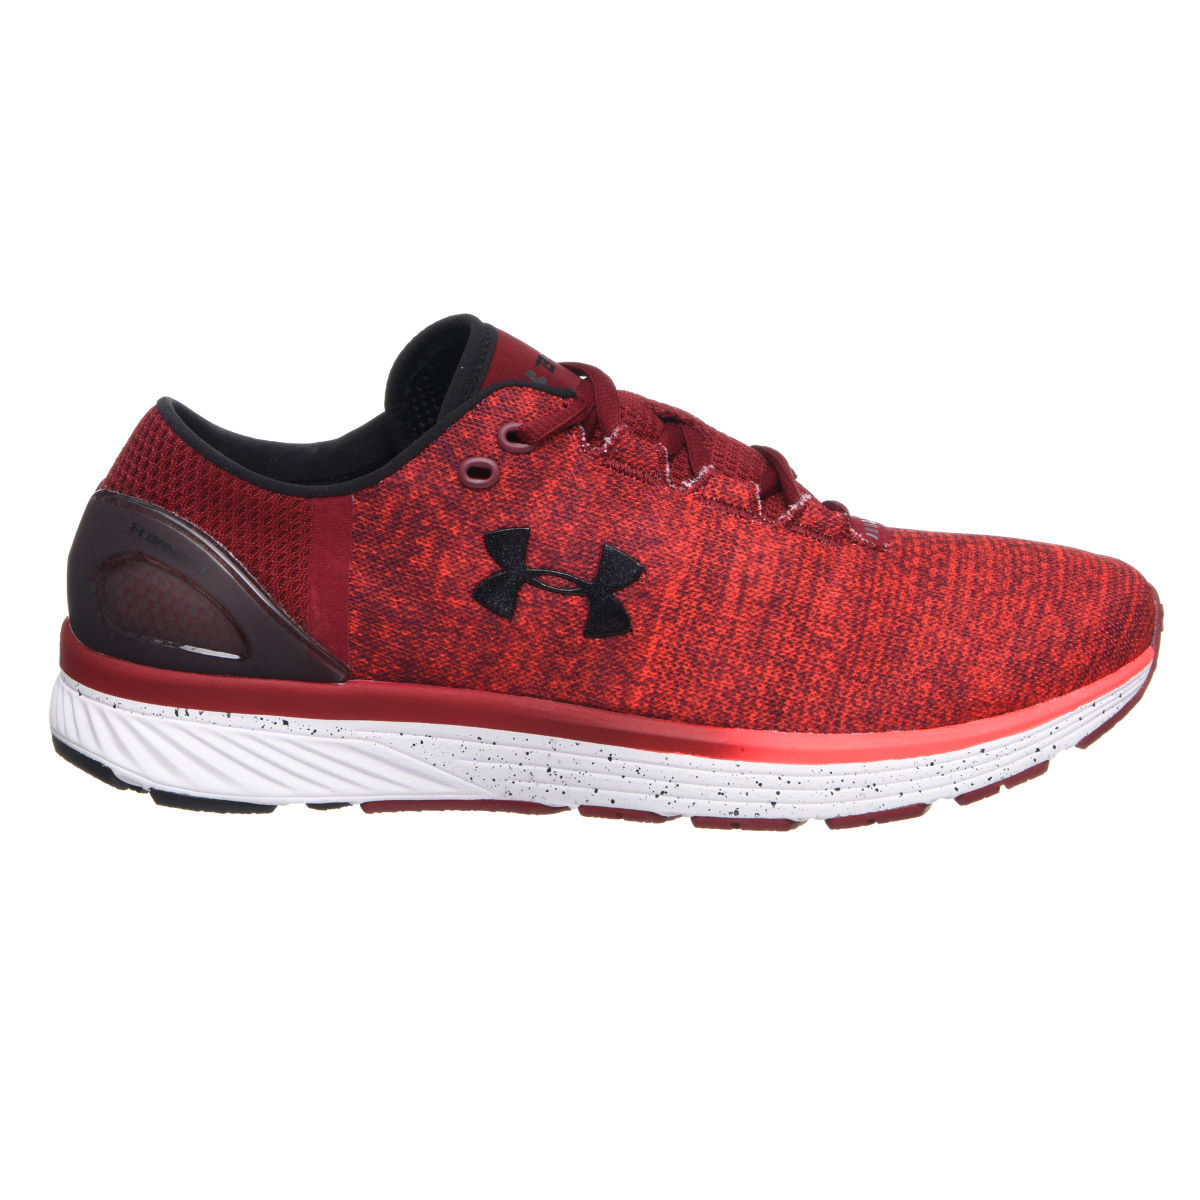 Chaussures Under Armour Charged Bandit 3 Run - UK 10 MARATHON RED